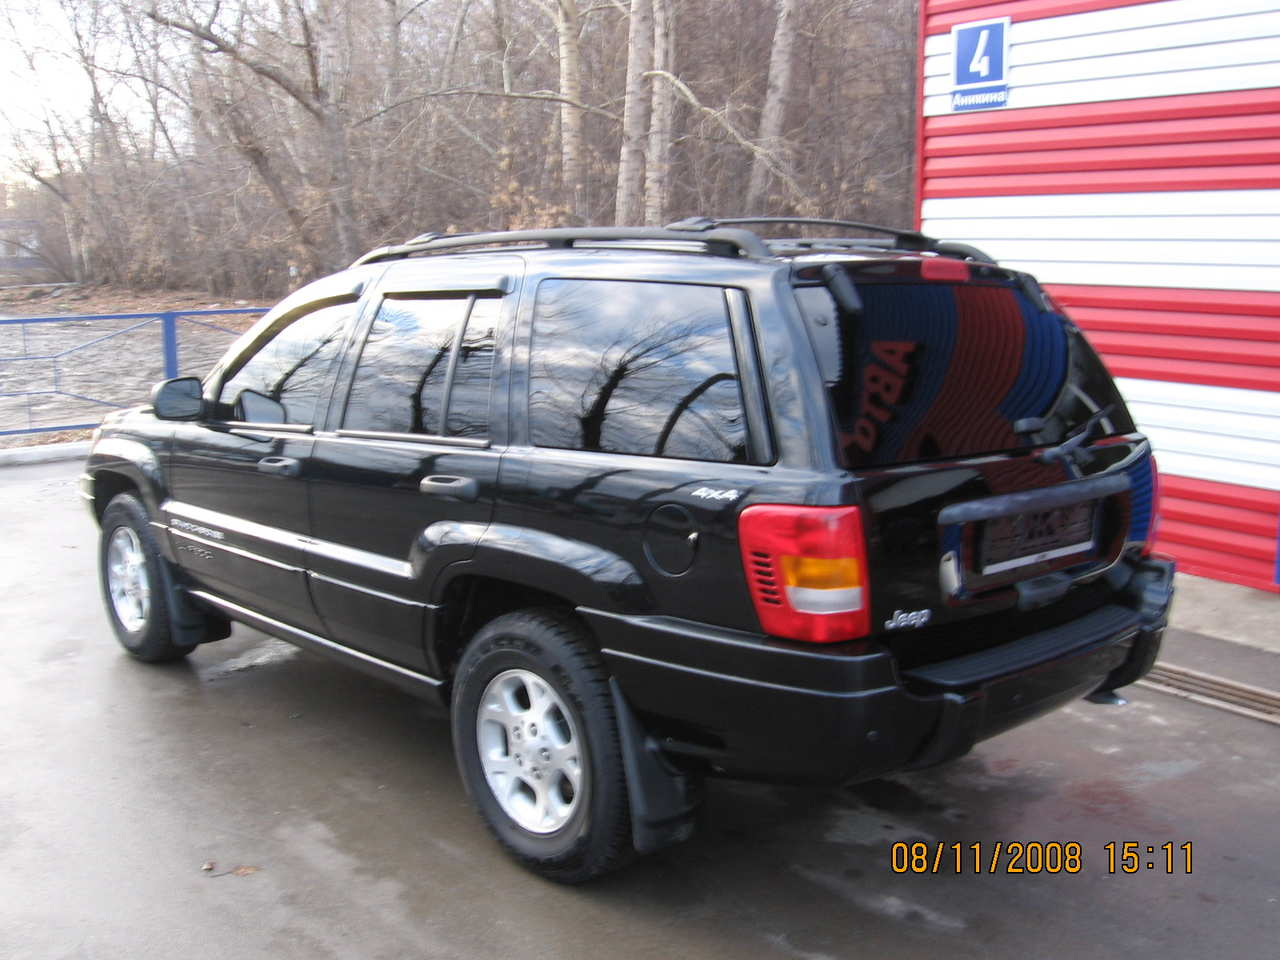 1999 jeep grand cherokee photos 4 0 gasoline automatic for sale. Black Bedroom Furniture Sets. Home Design Ideas